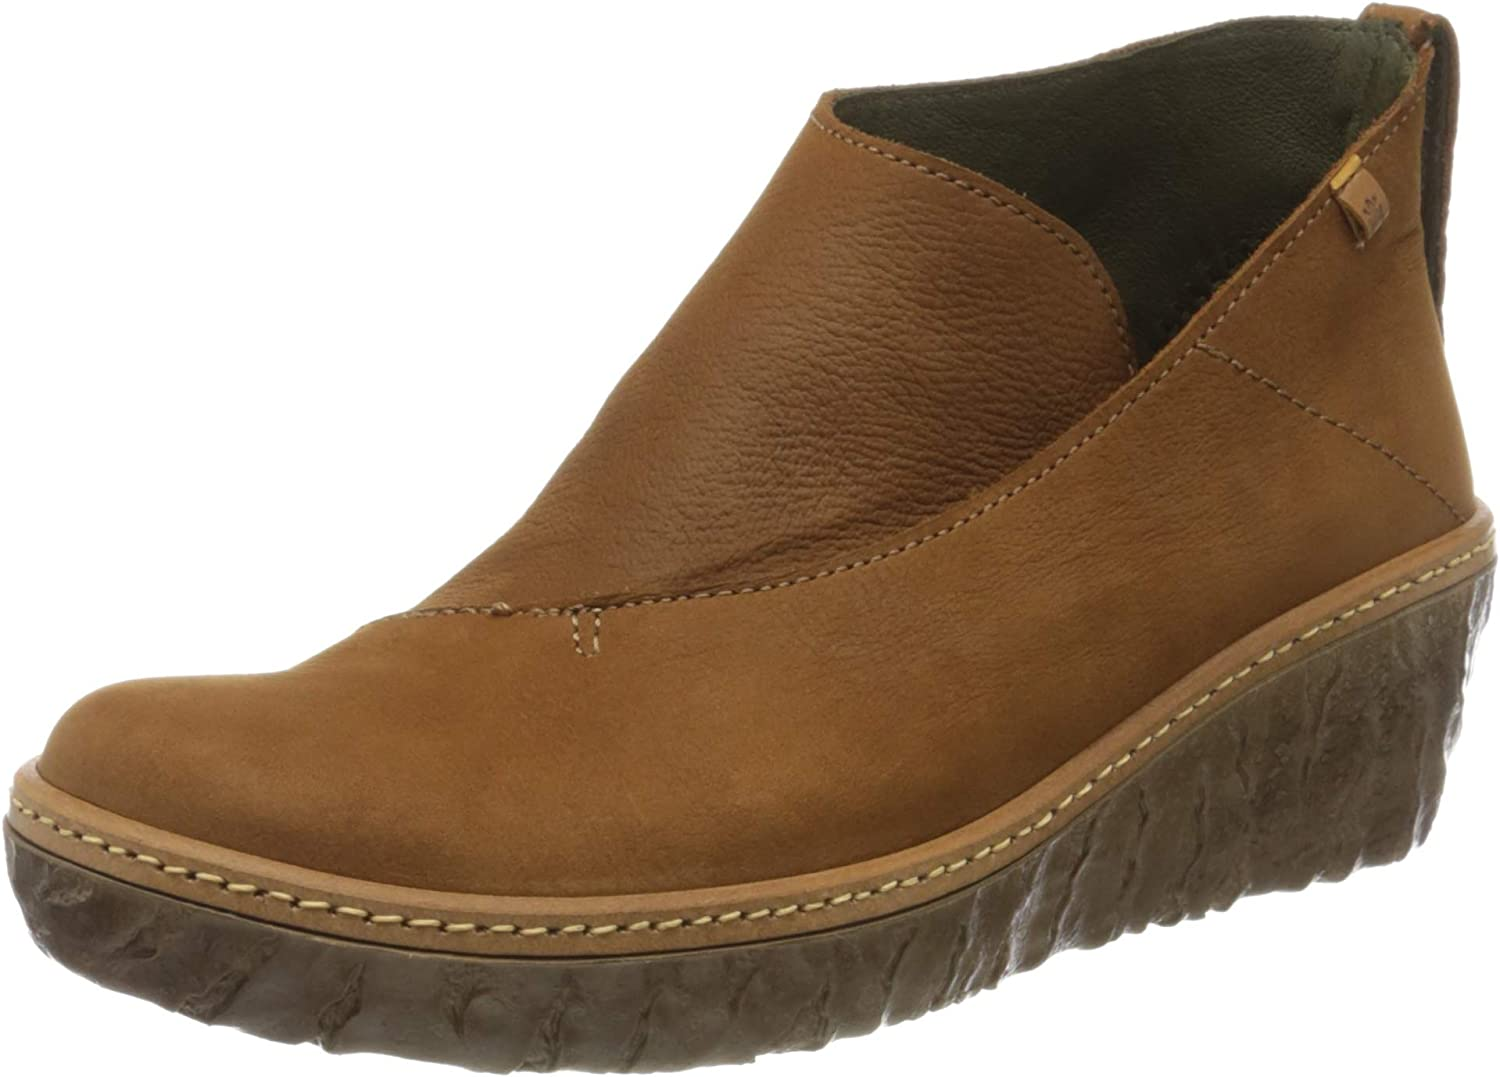 El Naturalista Women's Latest Max 57% OFF item Boots Ankle